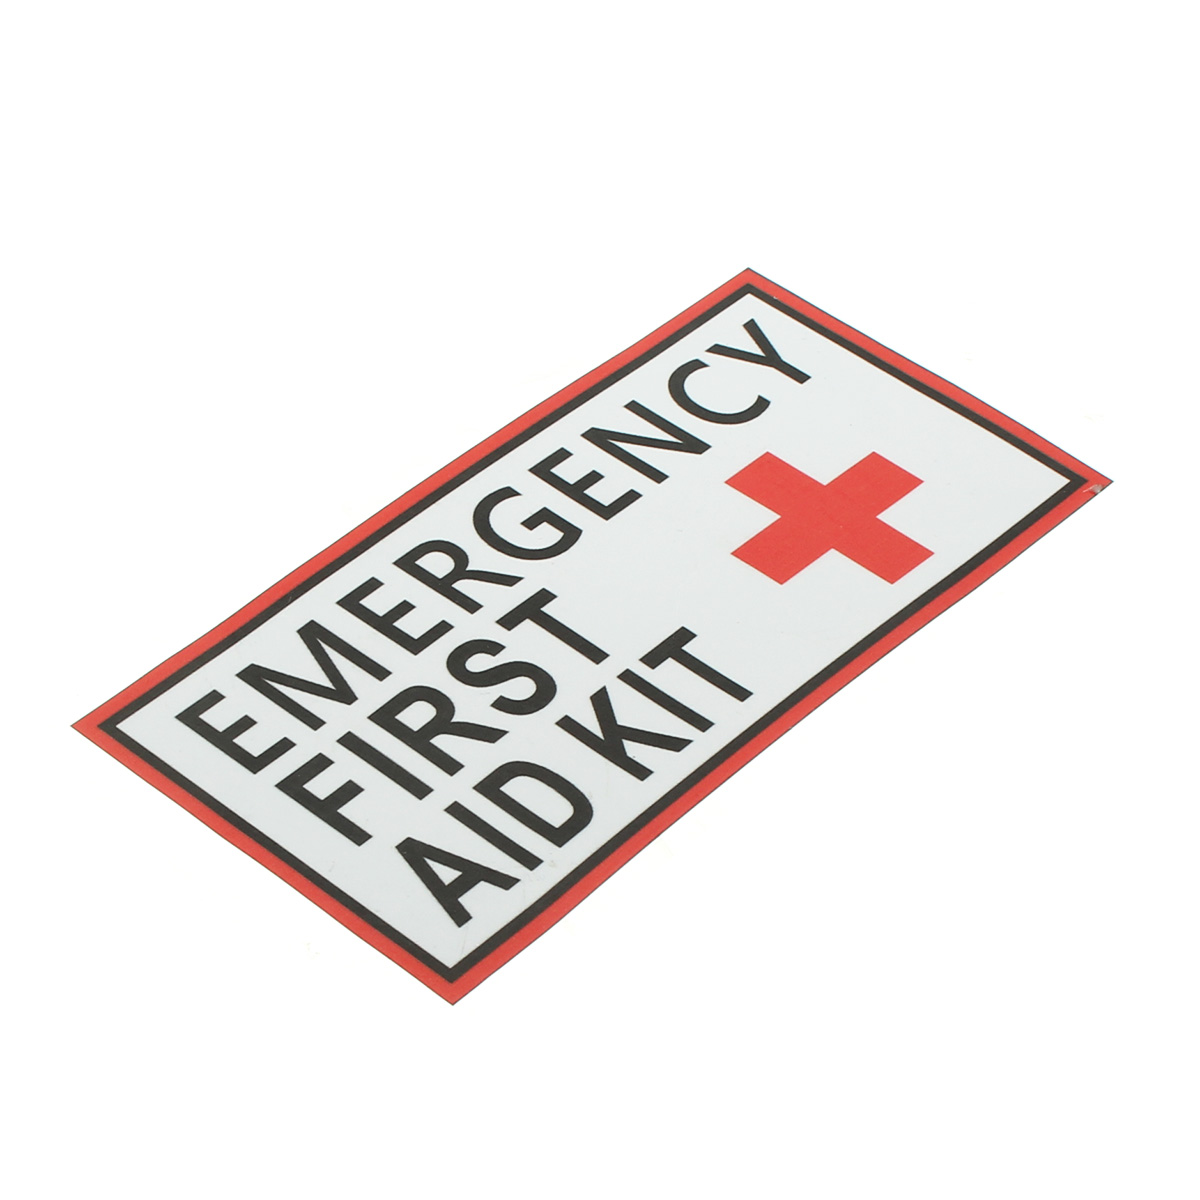 Careful New Outdoor 4 Size First Aid Emergency Vinyl Sticker Waterproof Label Signs Red Cross Health Sticker